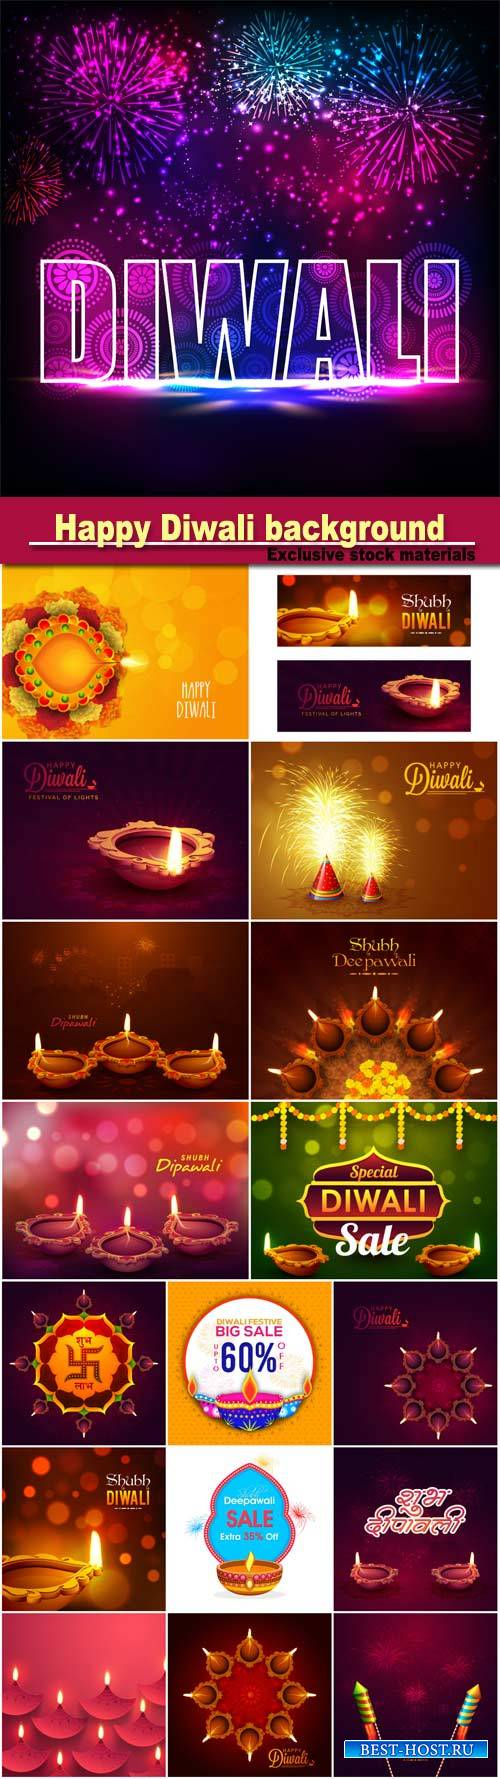 Happy Diwali celebration background